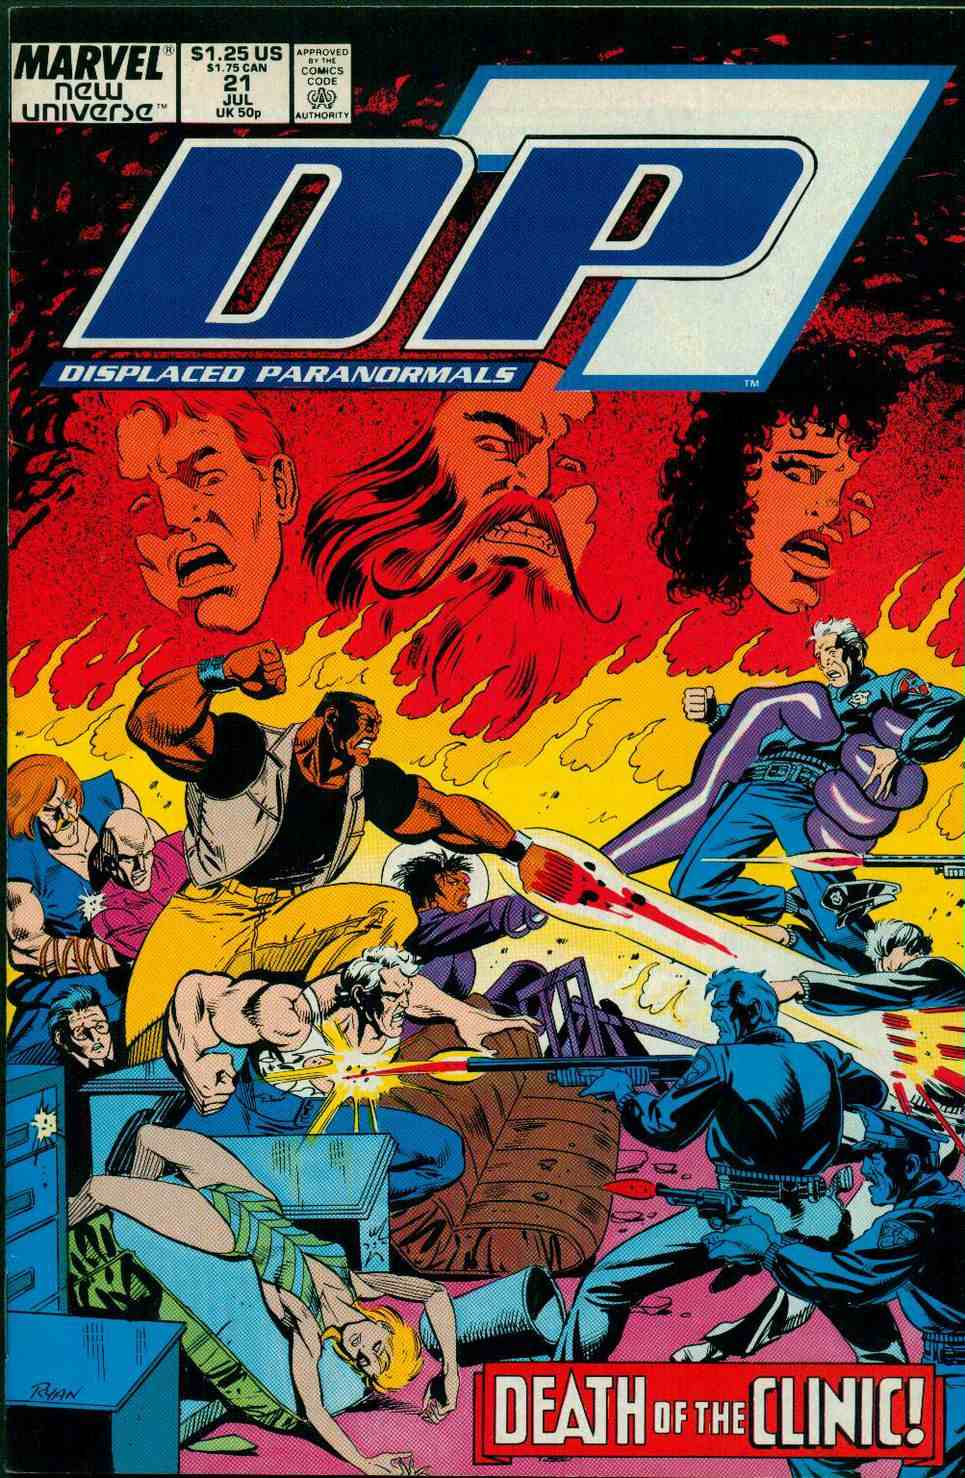 Read online DP7 comic -  Issue #21 - 1